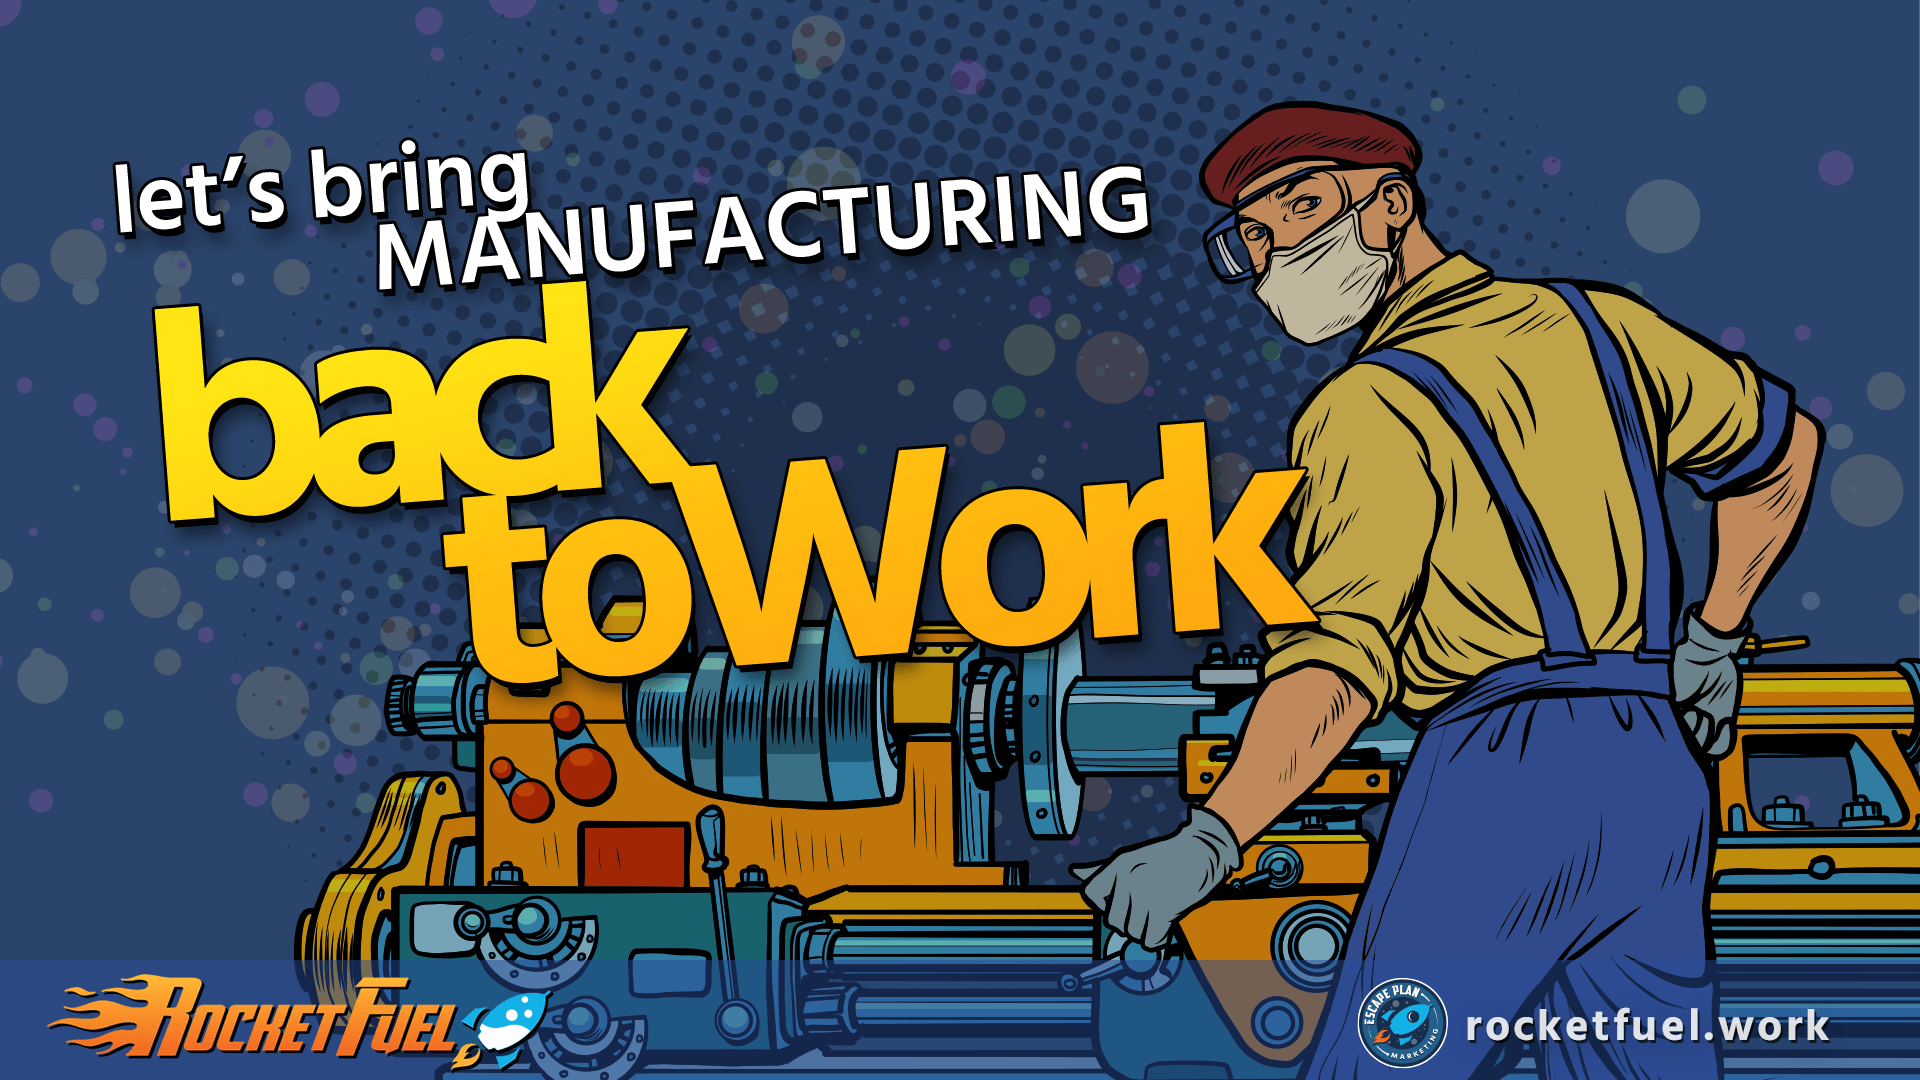 Industrial Manufacturing Post-COVID Workforce